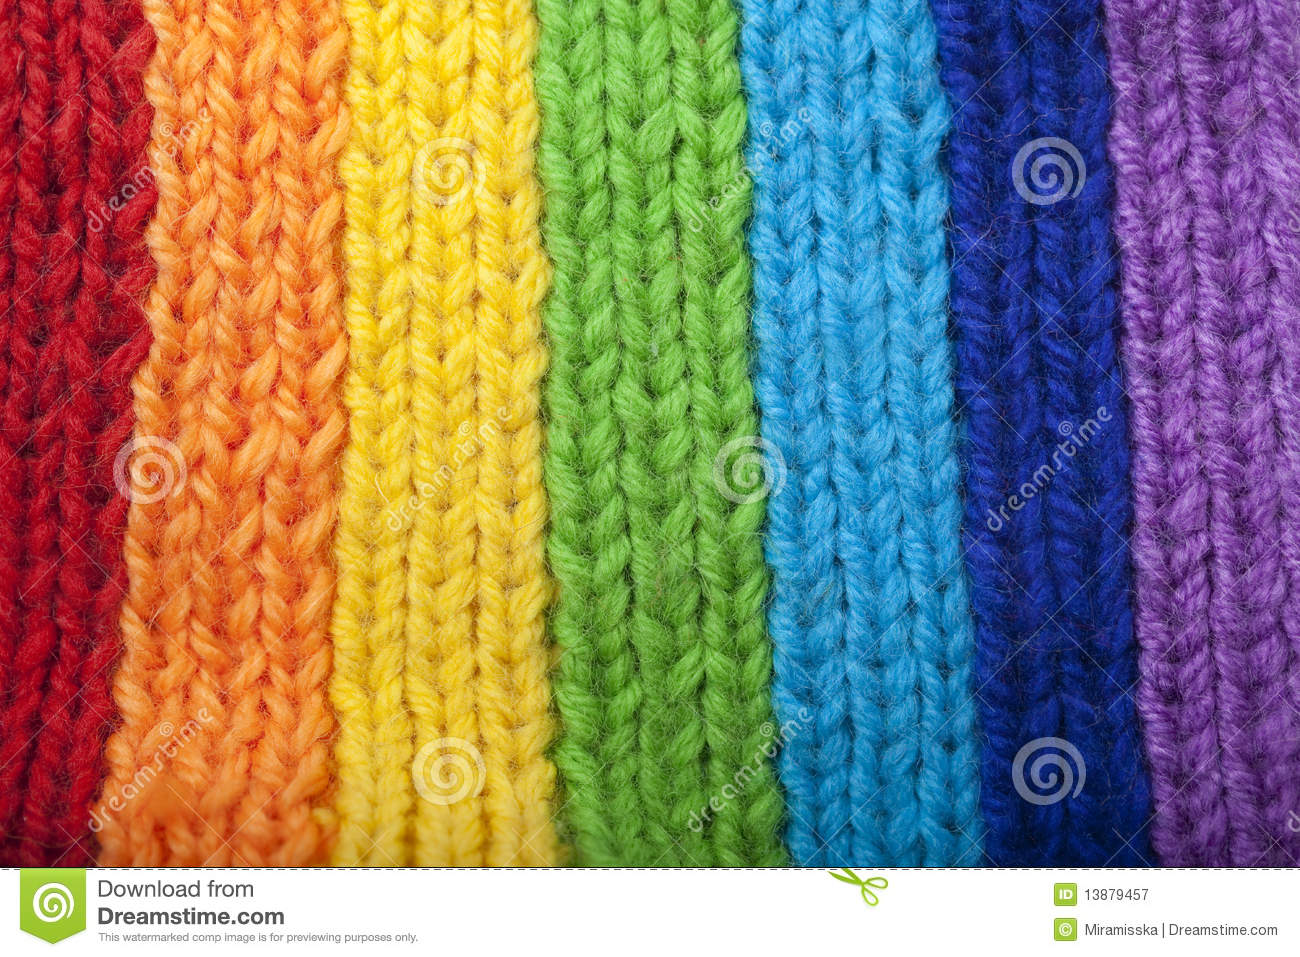 Knitting Pattern For Rainbow Scarf : Bright Rainbow Knitted Scarf Royalty Free Stock Photography - Image: 13879457